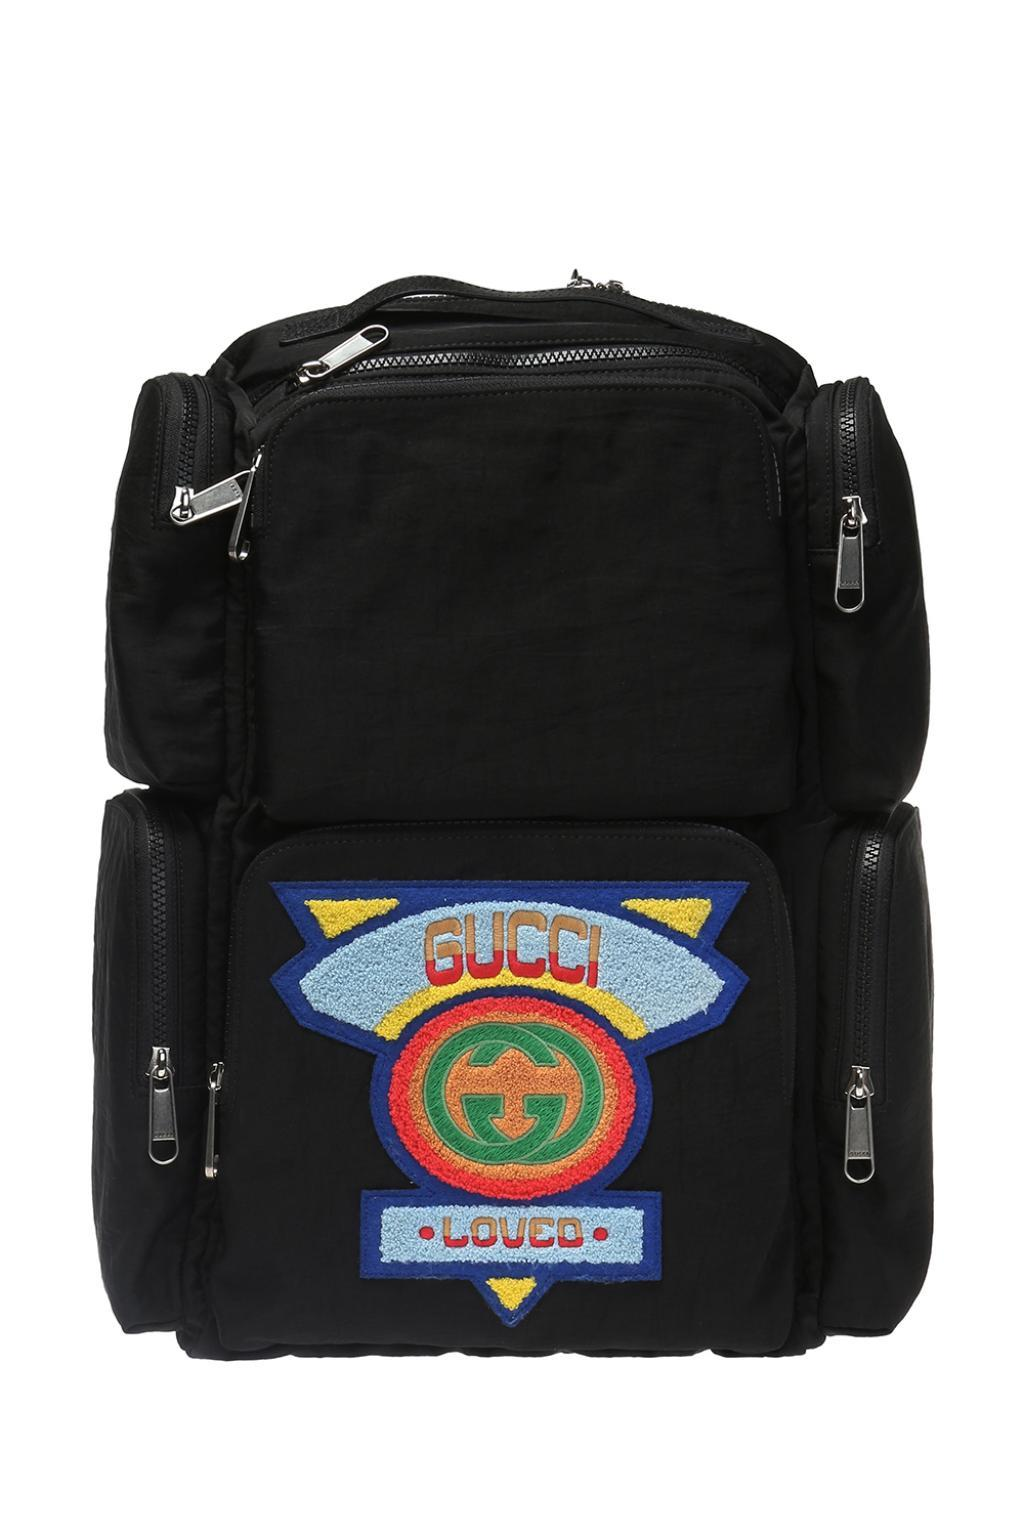 db8b195945a Lyst - Gucci Logo-patched Backpack in Black for Men - Save 12%